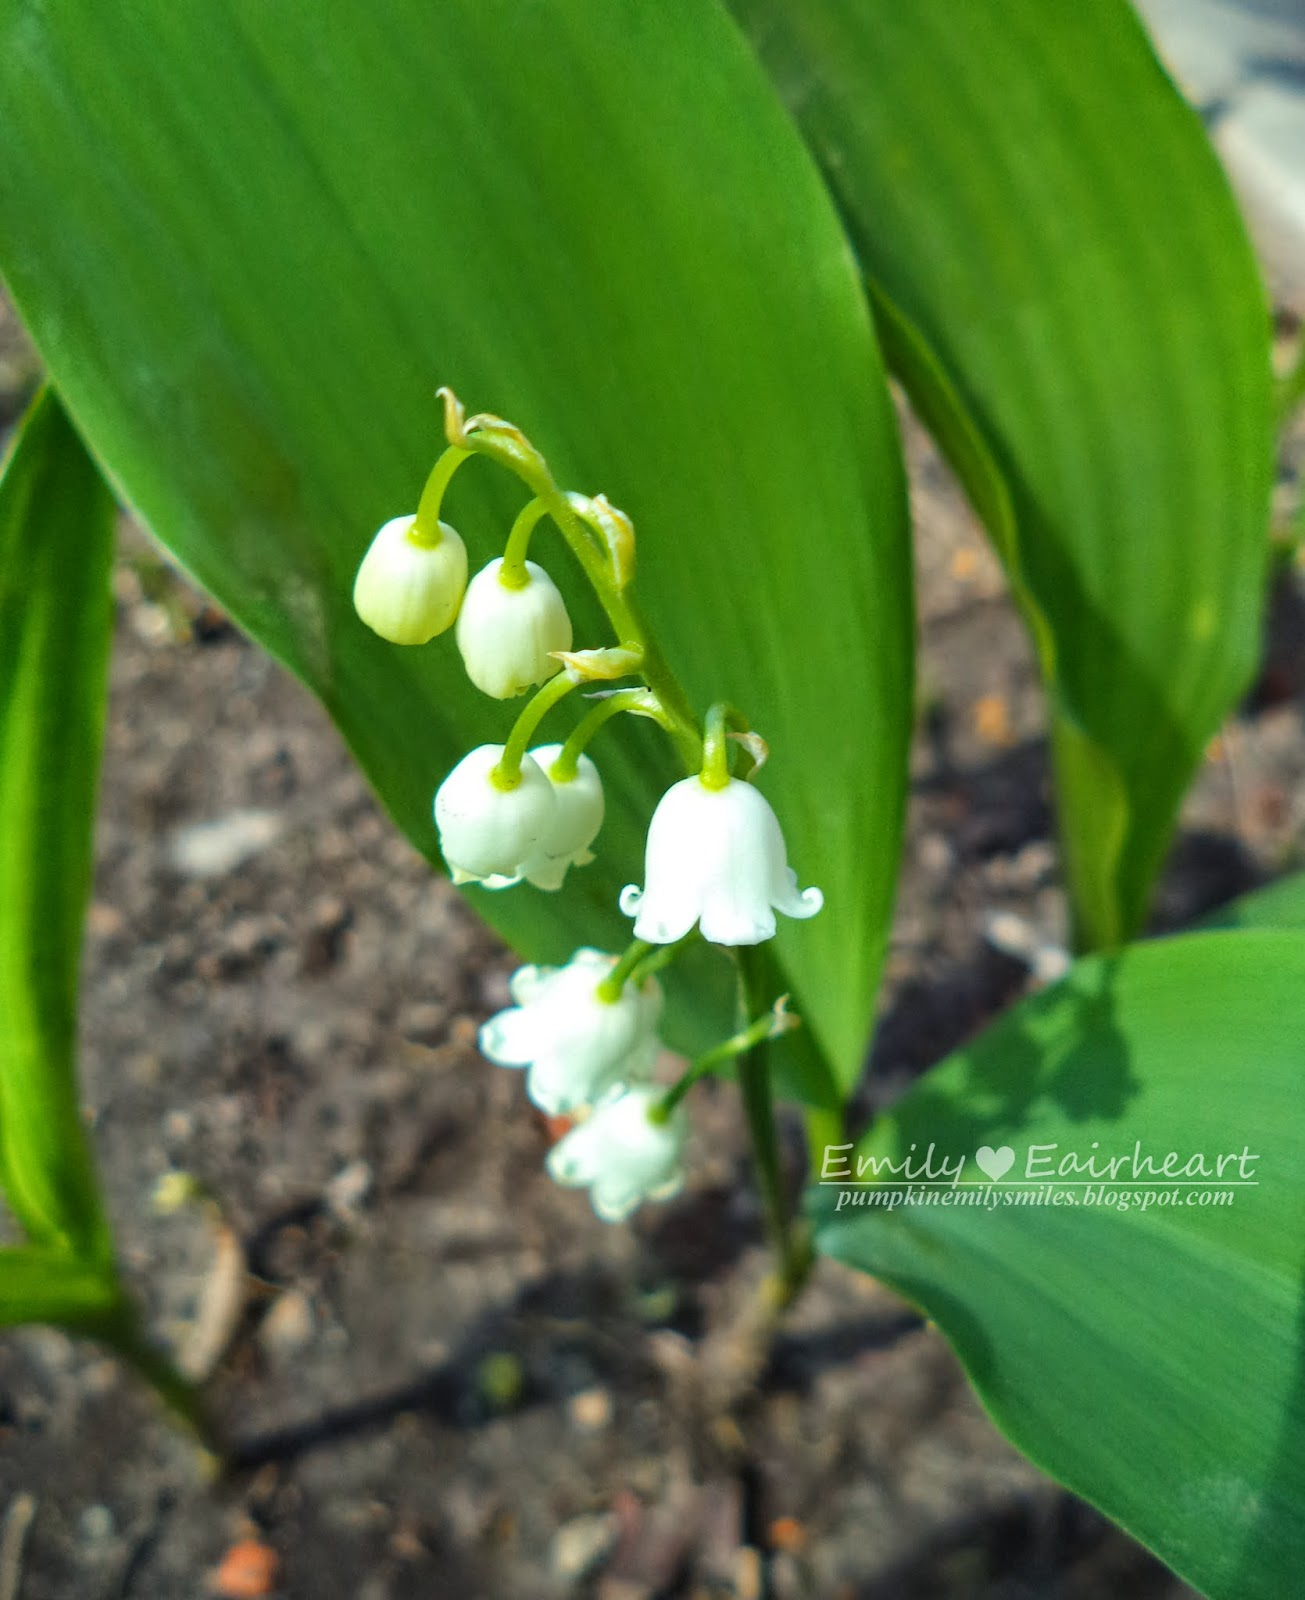 Lily of the Valley, bell shaped flowers.